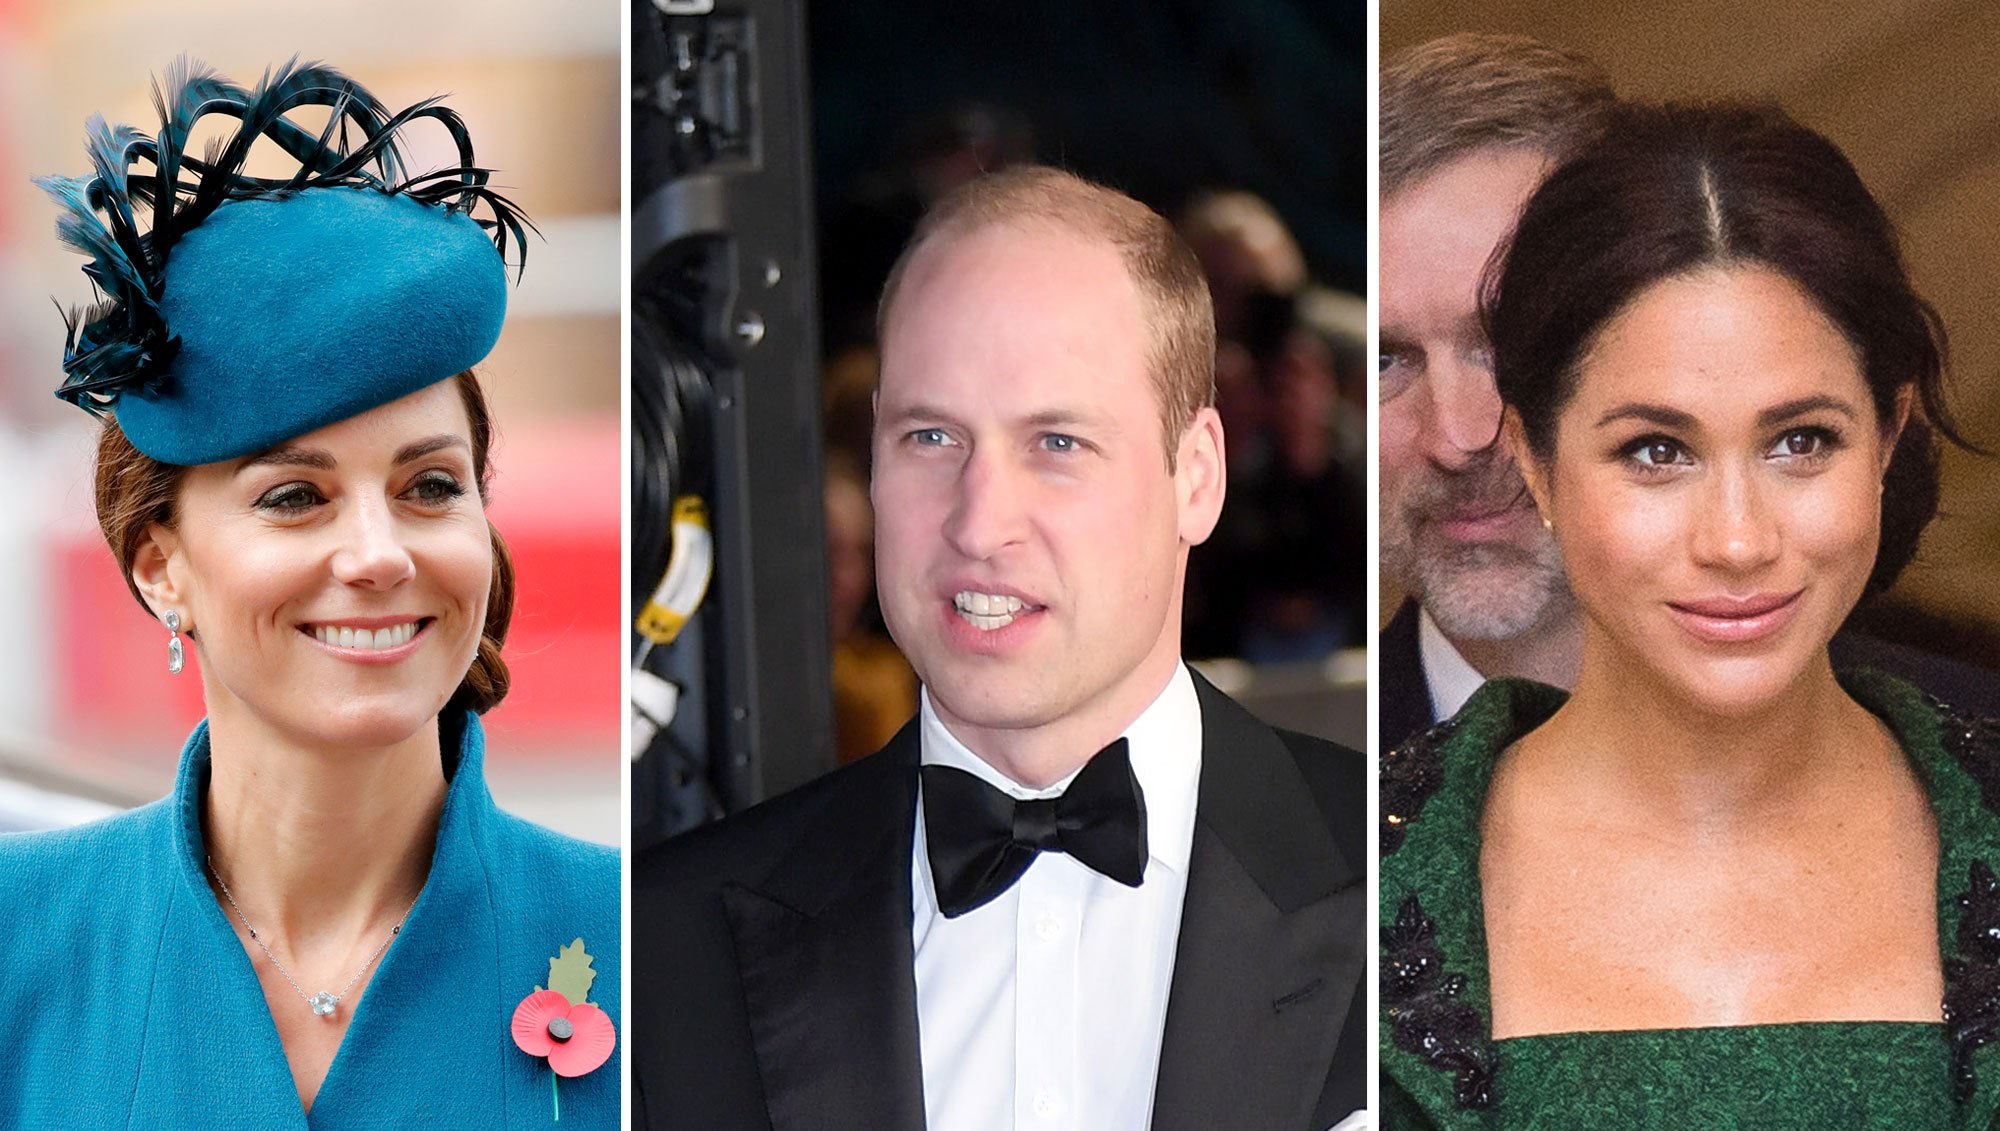 Prince William, Duke of Cambridge, Catherine, Duchess of Cambridge, Meghan, Duchess of Sussex Spend Easter Together